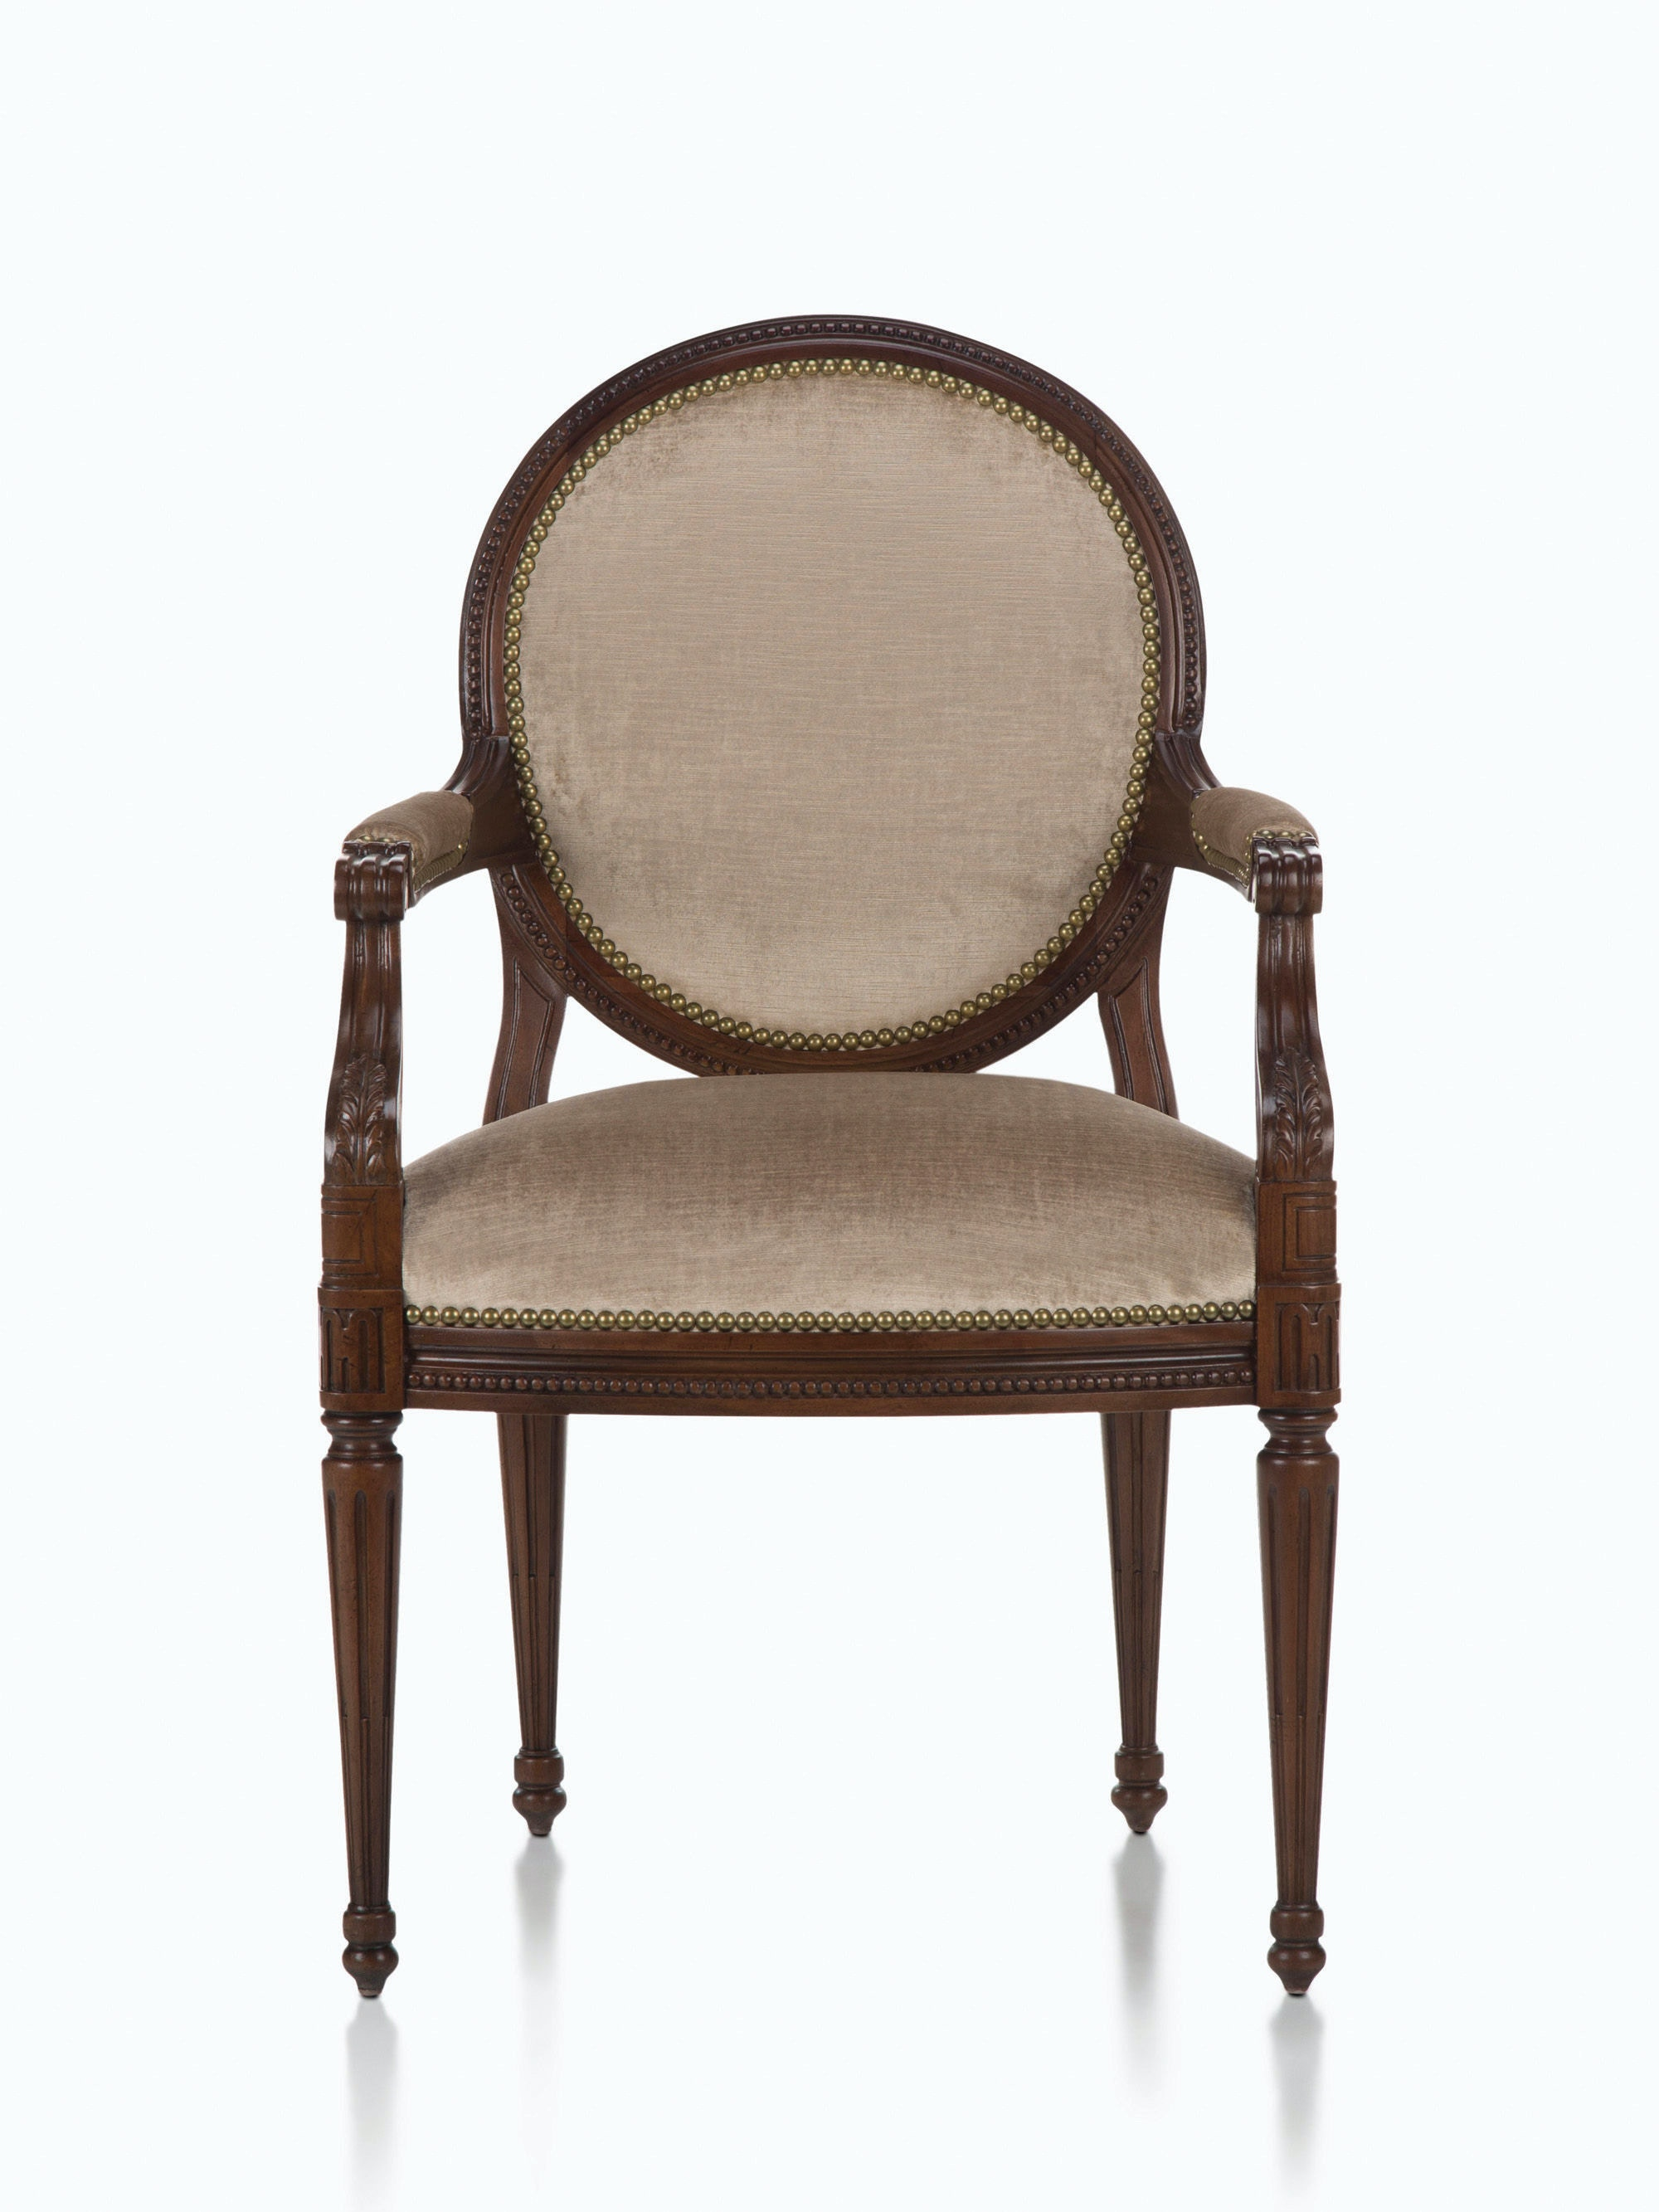 hickory chair louis xvi chairs for posture support dining room arm 3105 11